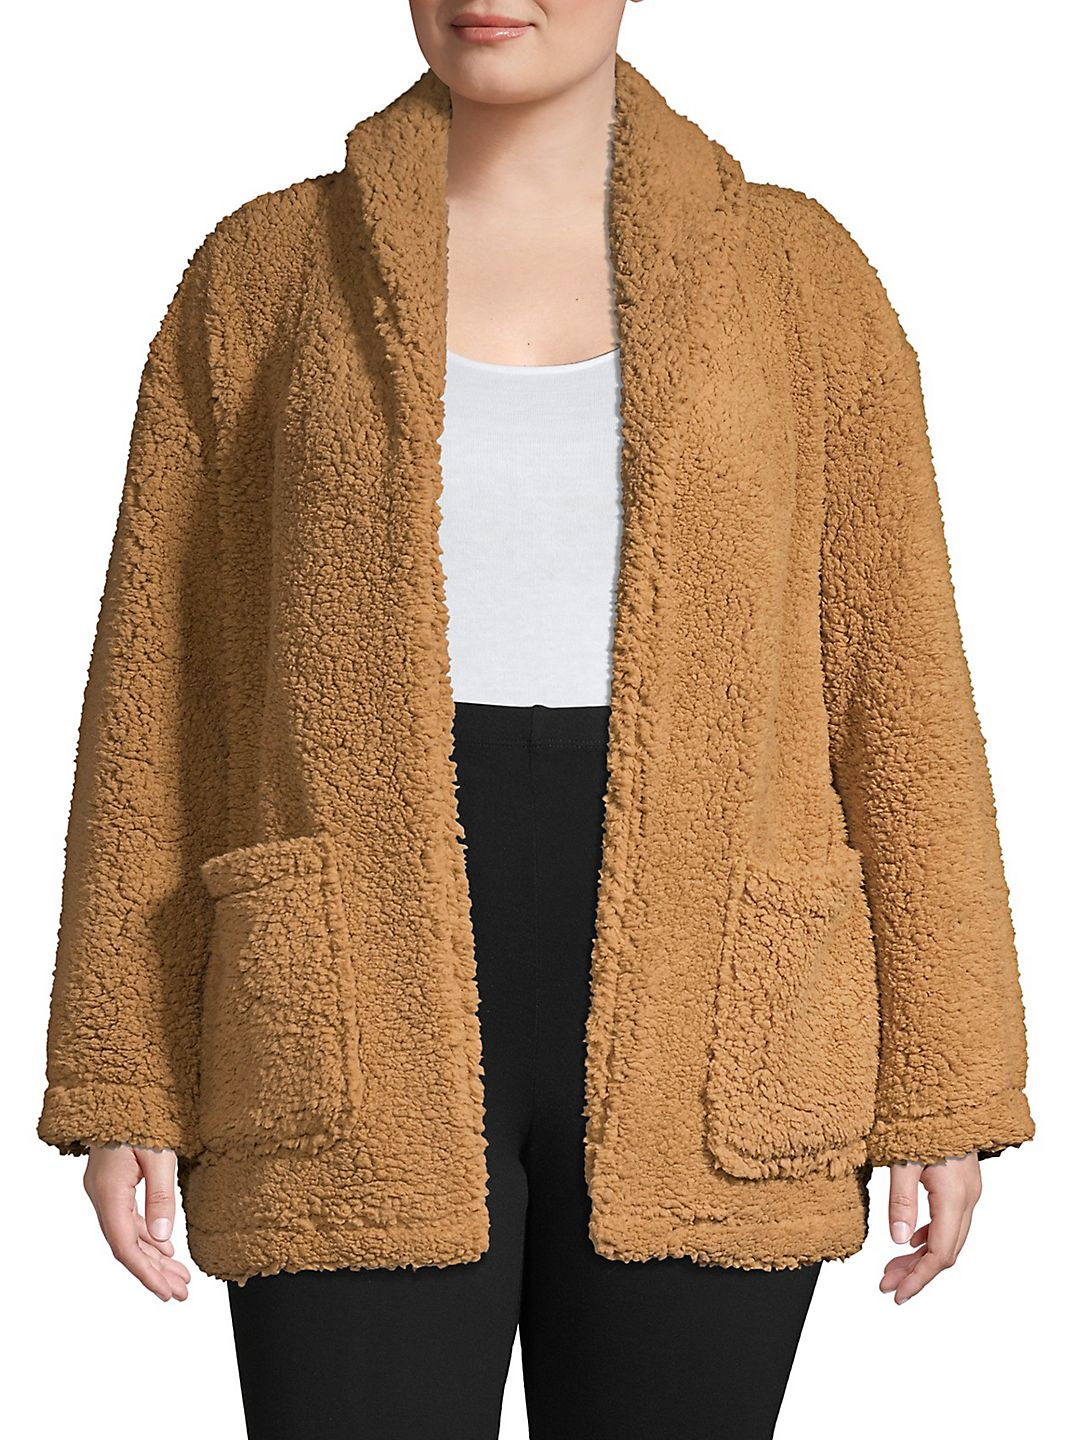 Big Pocket Teddy Jacket